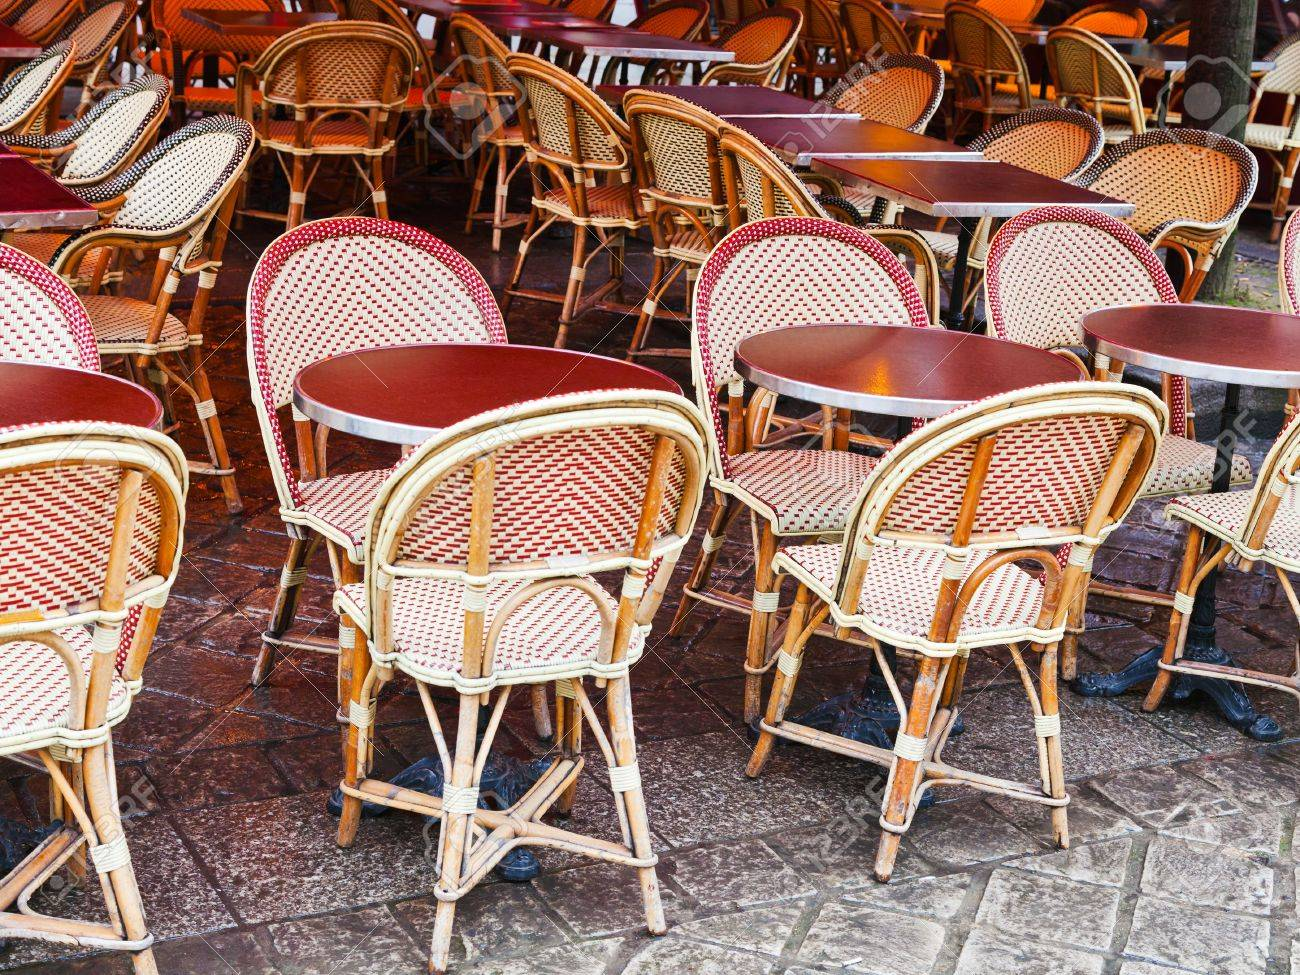 Cane Chairs And Red Table In Paris Outdoor Cafe Stock Photo   19032806